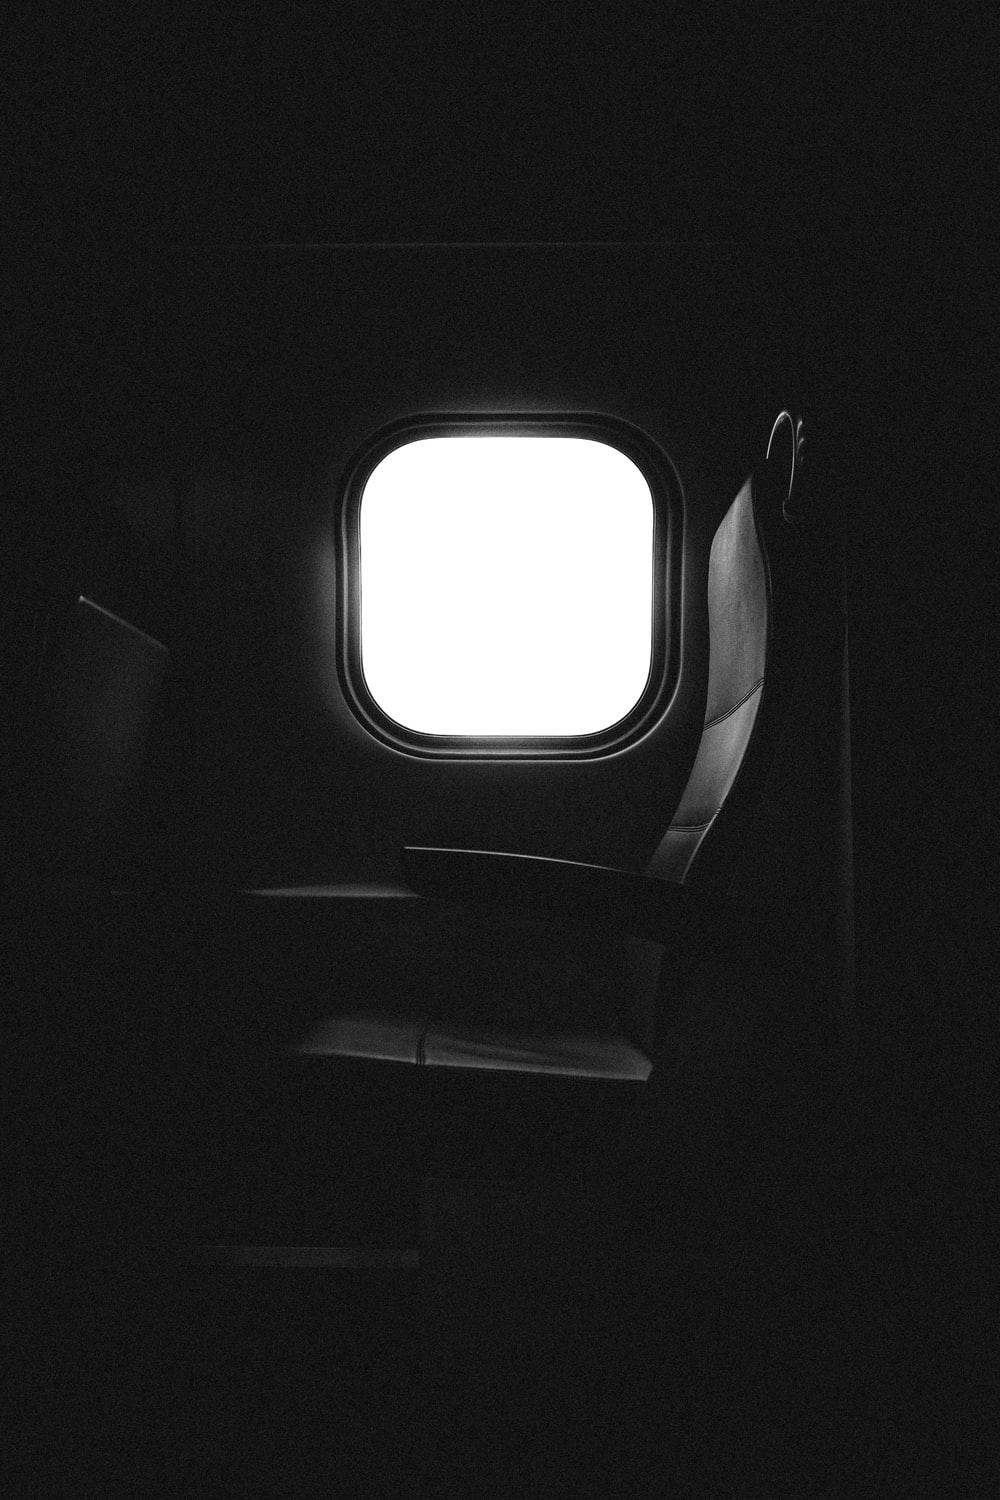 window of an airplane with a seat